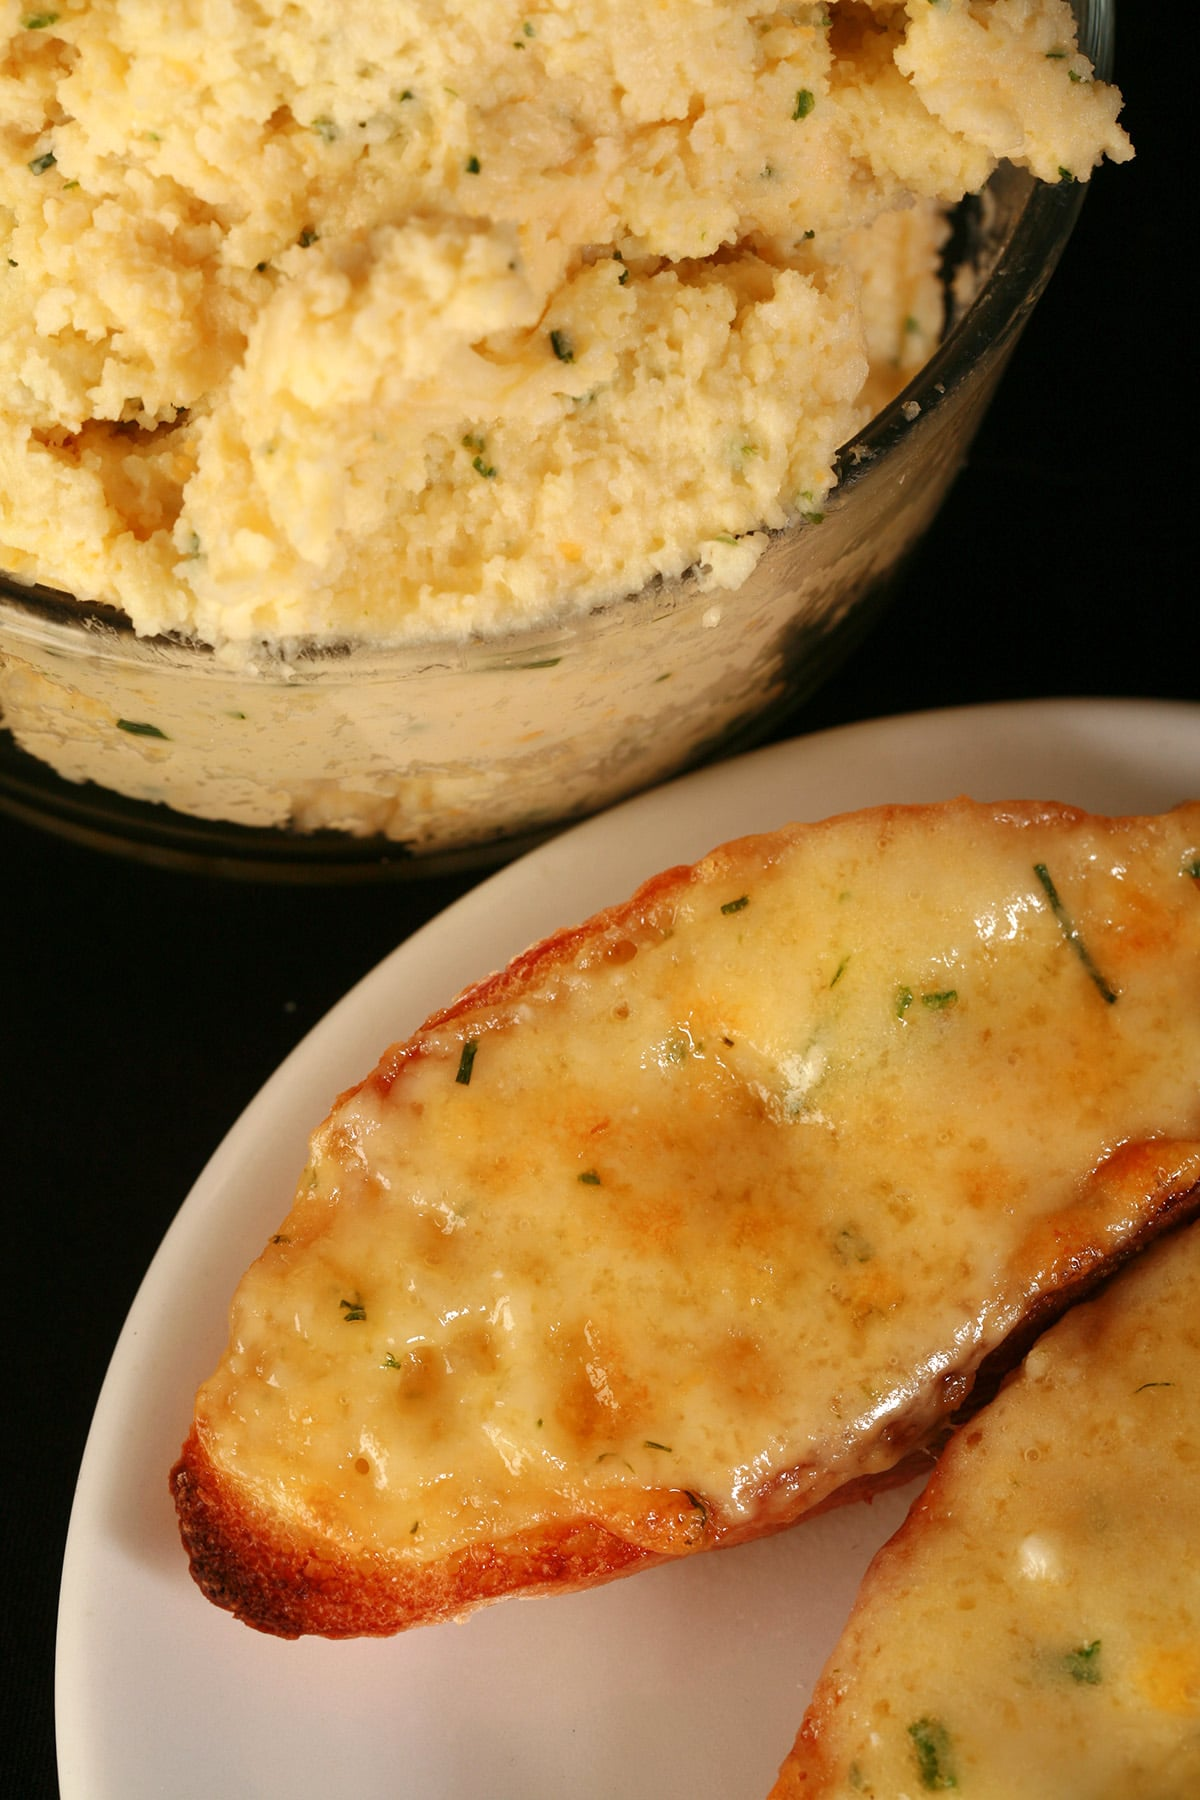 A plate of broiled garlic cheese bread made with fromage fort.